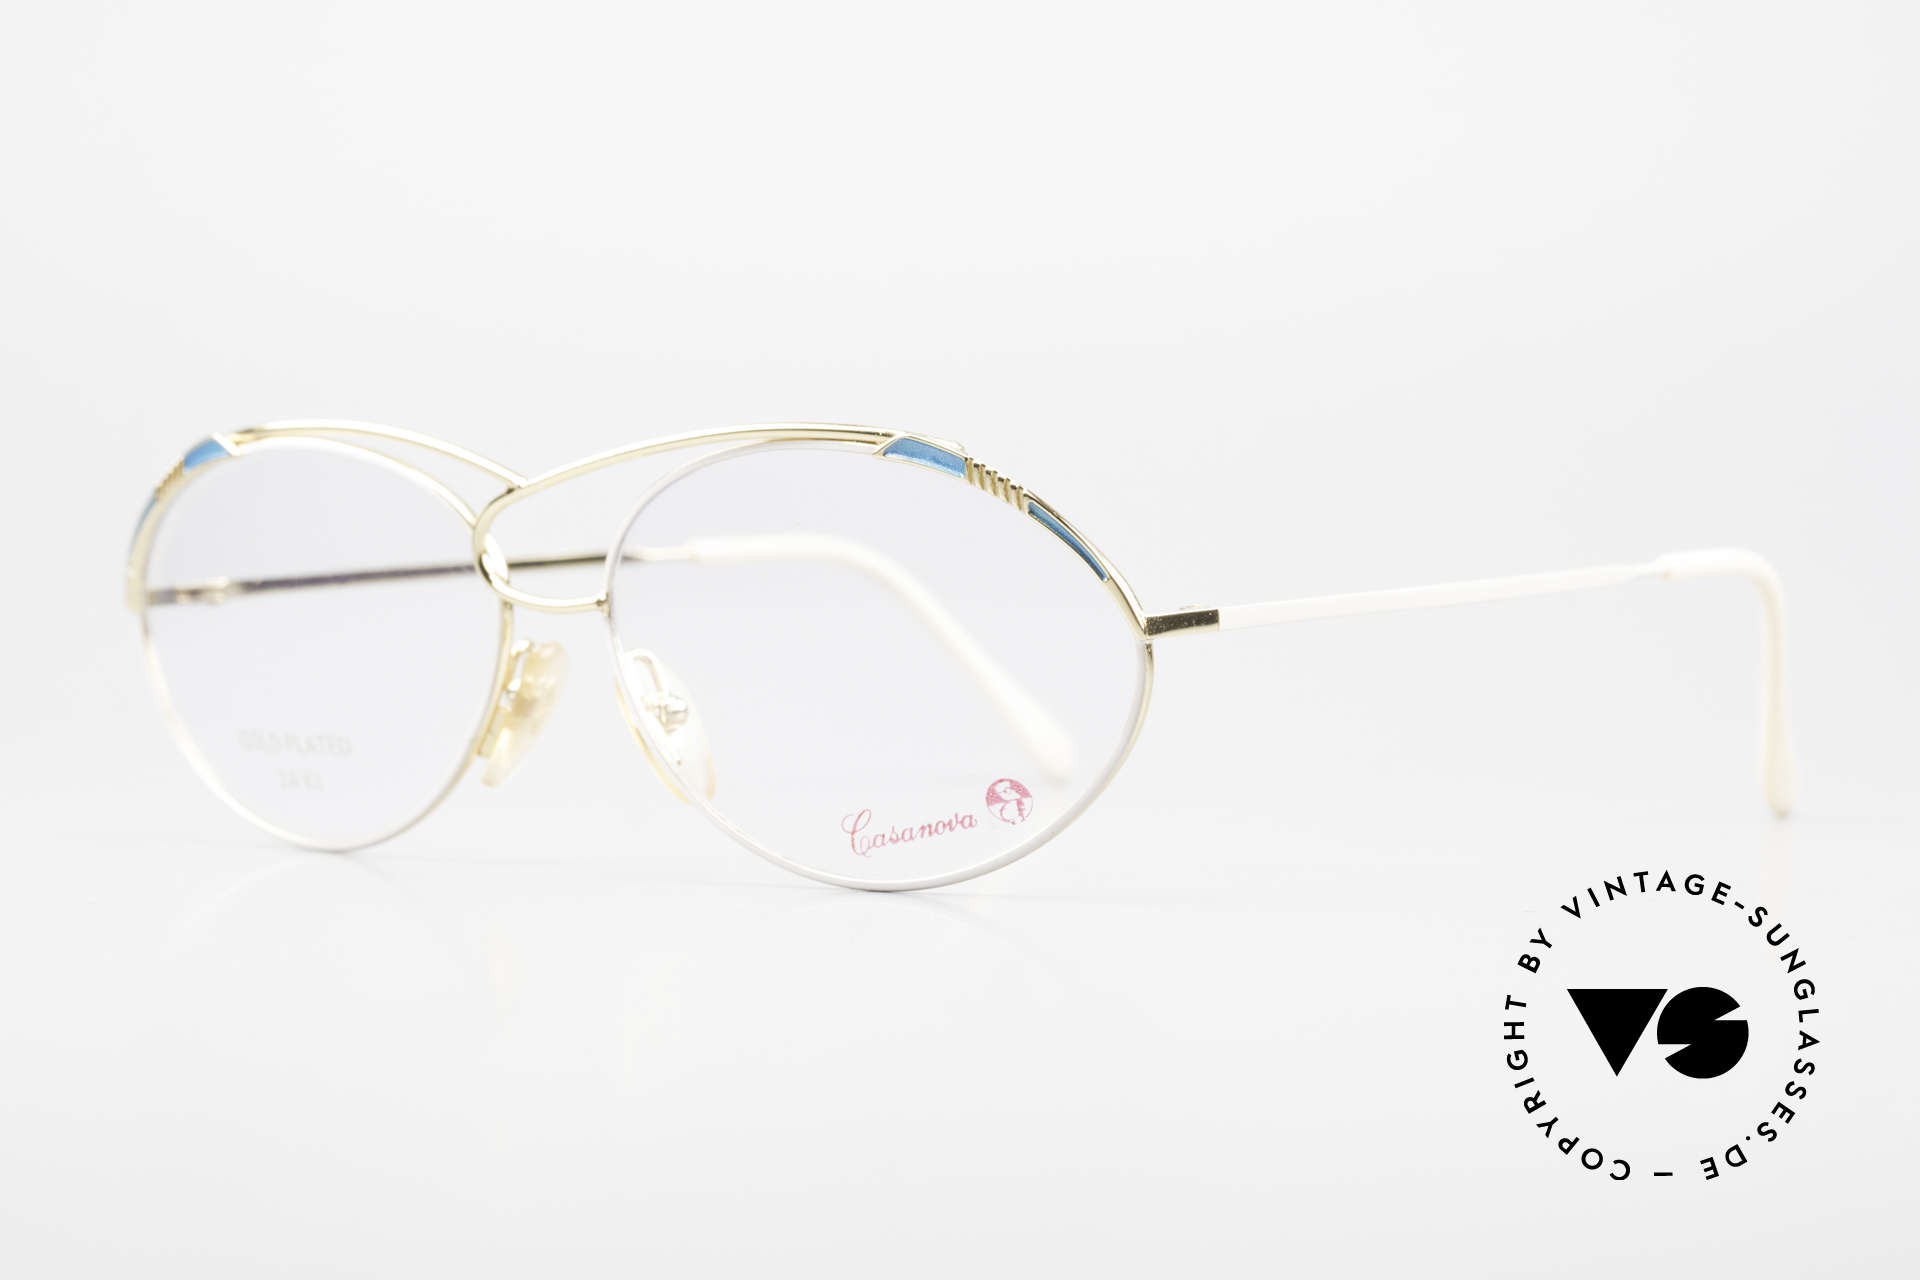 Casanova LC13 24kt Gold Plated Vintage Frame, 24KT gold-plated frame (absolutely top-notch quality), Made for Women